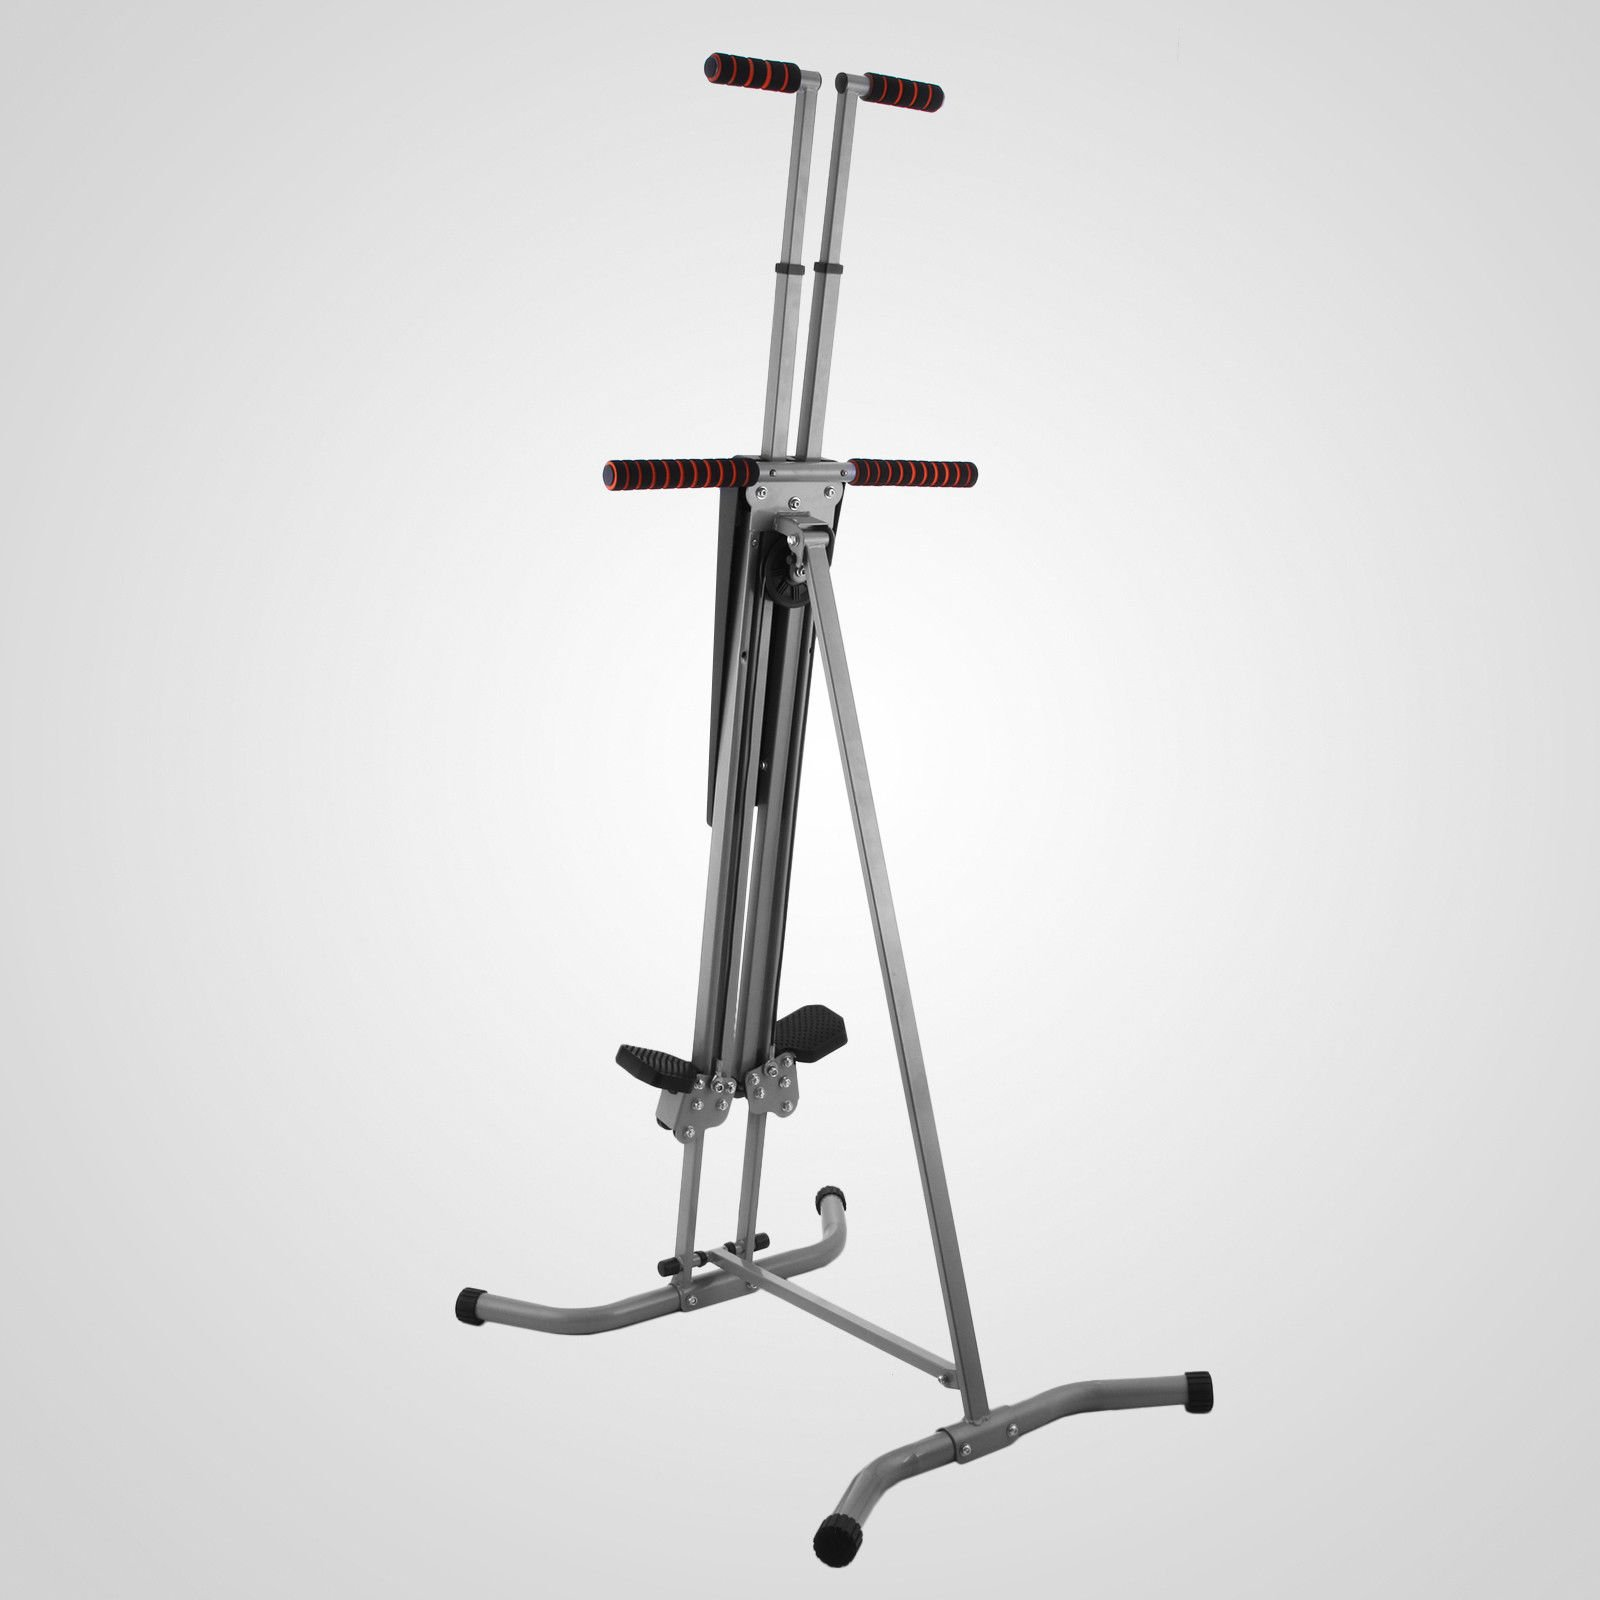 LCD Vertical Climber Stepper Climbing Machine Home Use Digital Calorie 200Kg by Happybeamy (Image #1)